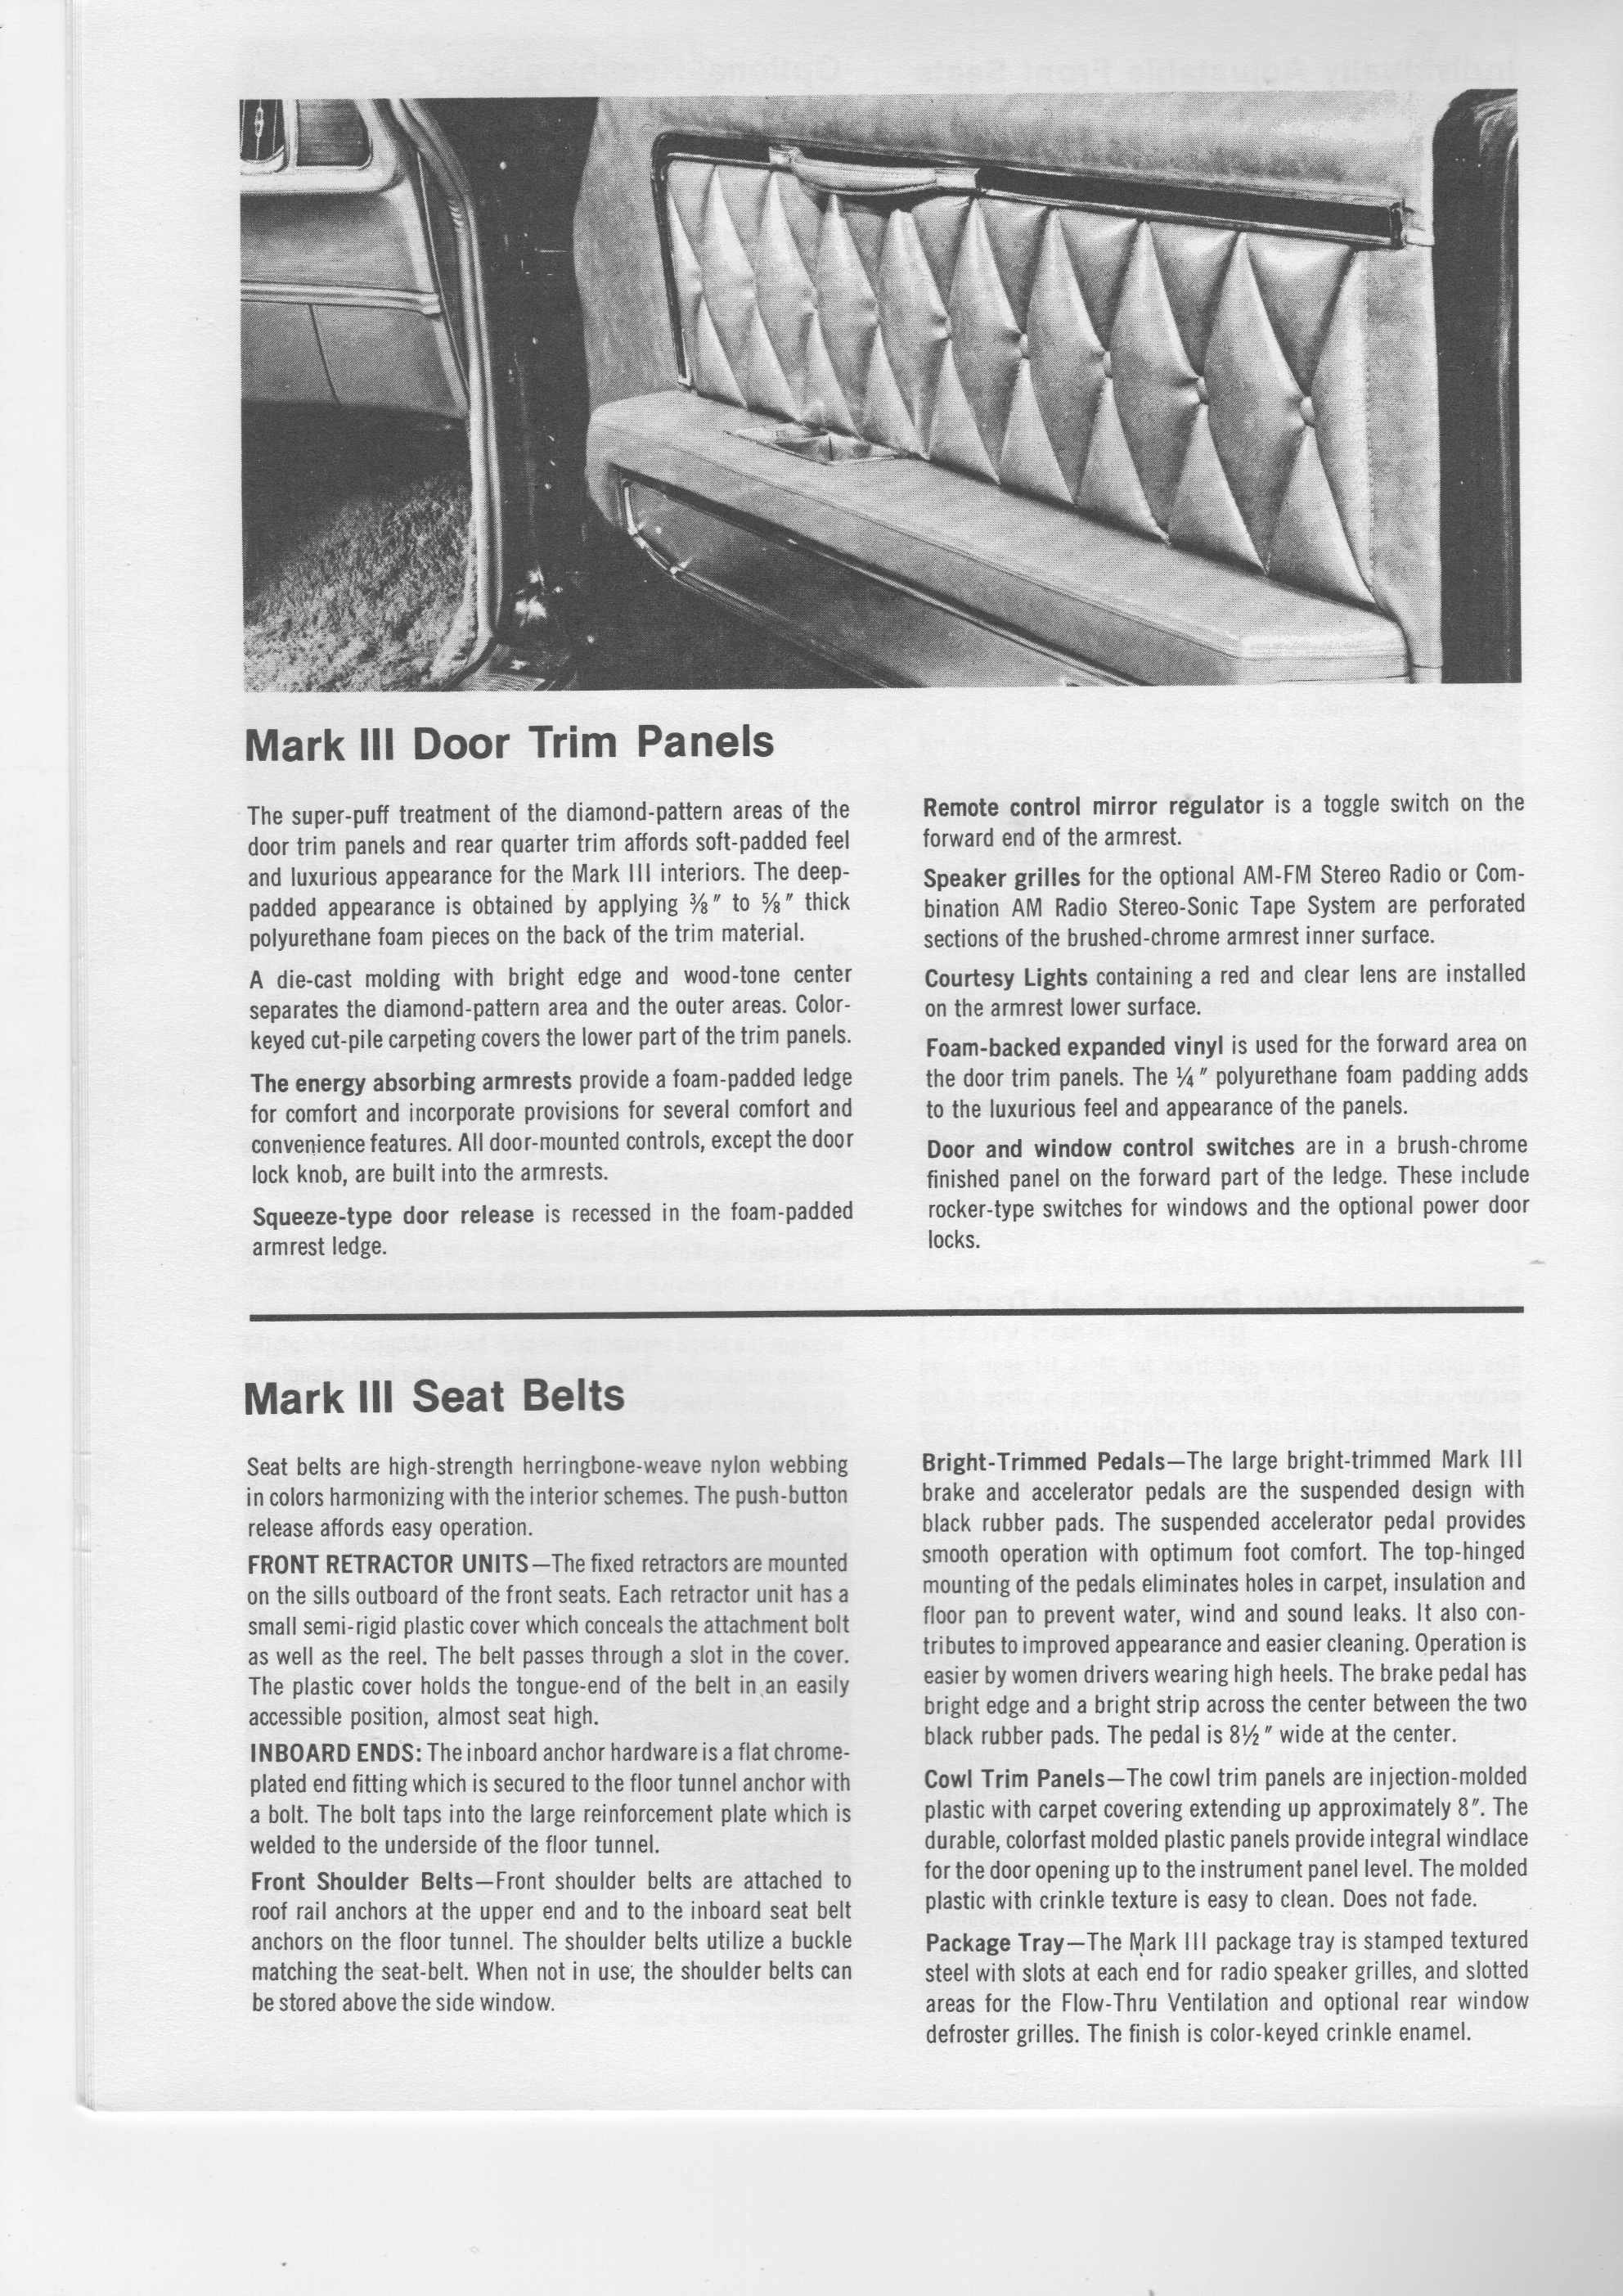 Coal 1970 Lincoln Continental Mark Iii The Plot Twist 1955 Ford Thunderbird Fuse Box Location Page From A Copy Of 1969 Illustrated Facts Figures Manual I Managed To Pick Up At Car Swap Meet Few Years Back